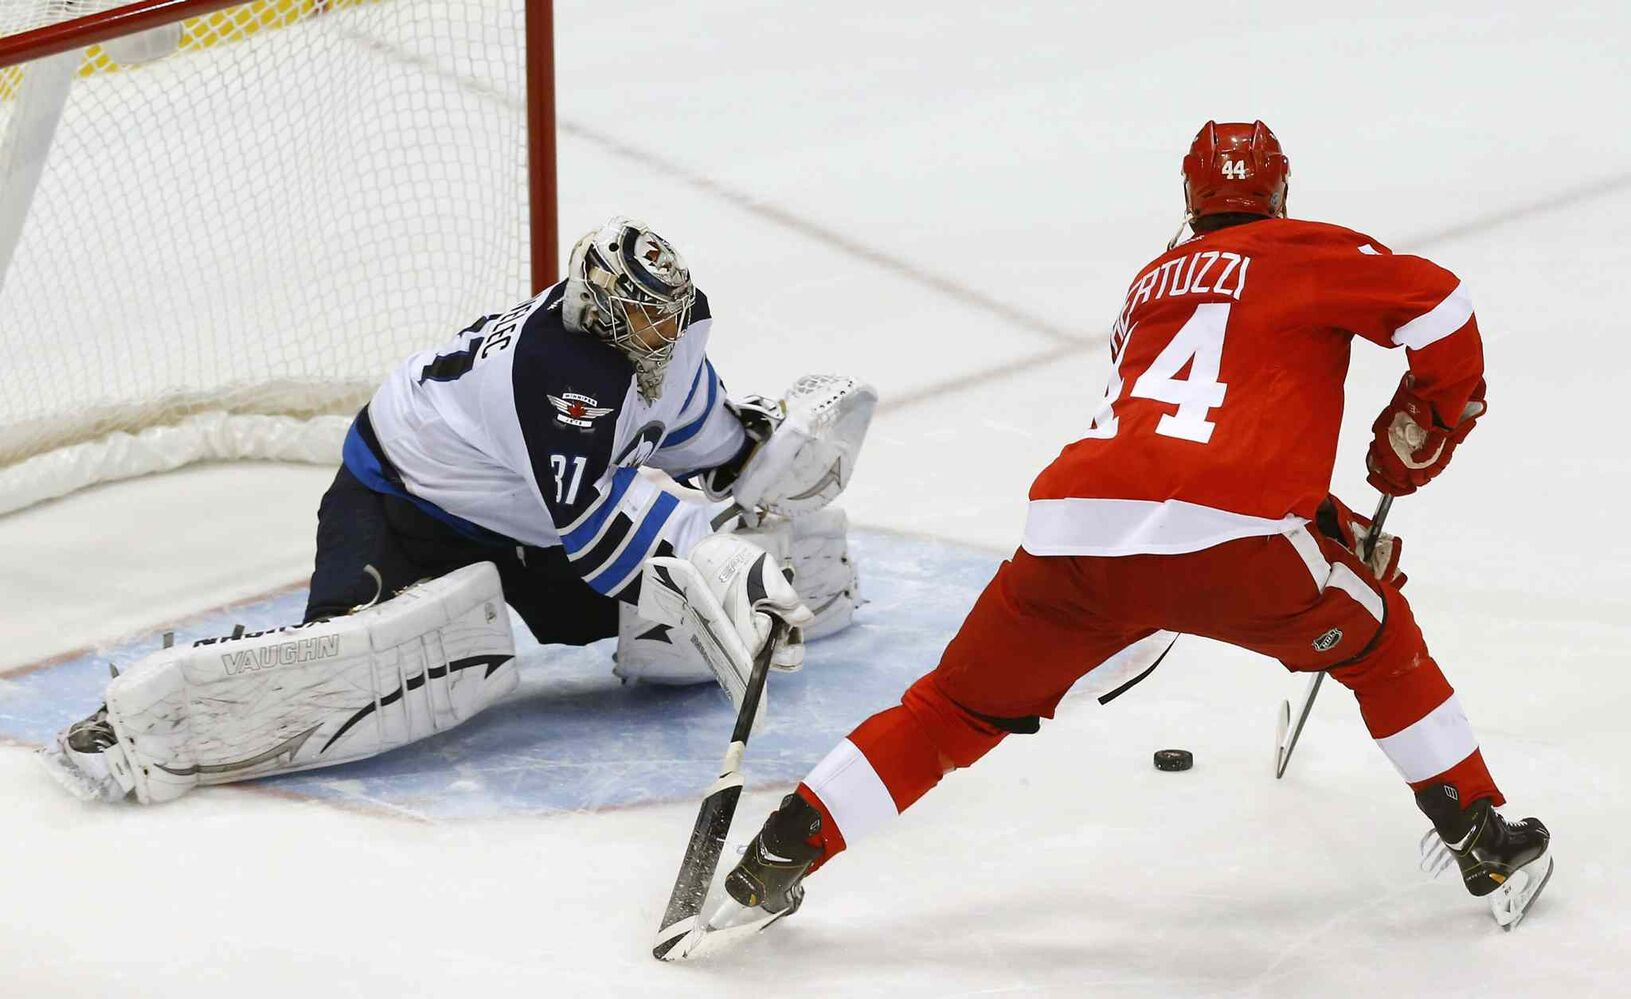 Winnipeg Jets goalie Ondrej Pavelec stops Detroit Red Wings forward Todd Bertuzzi's shootout attempt.